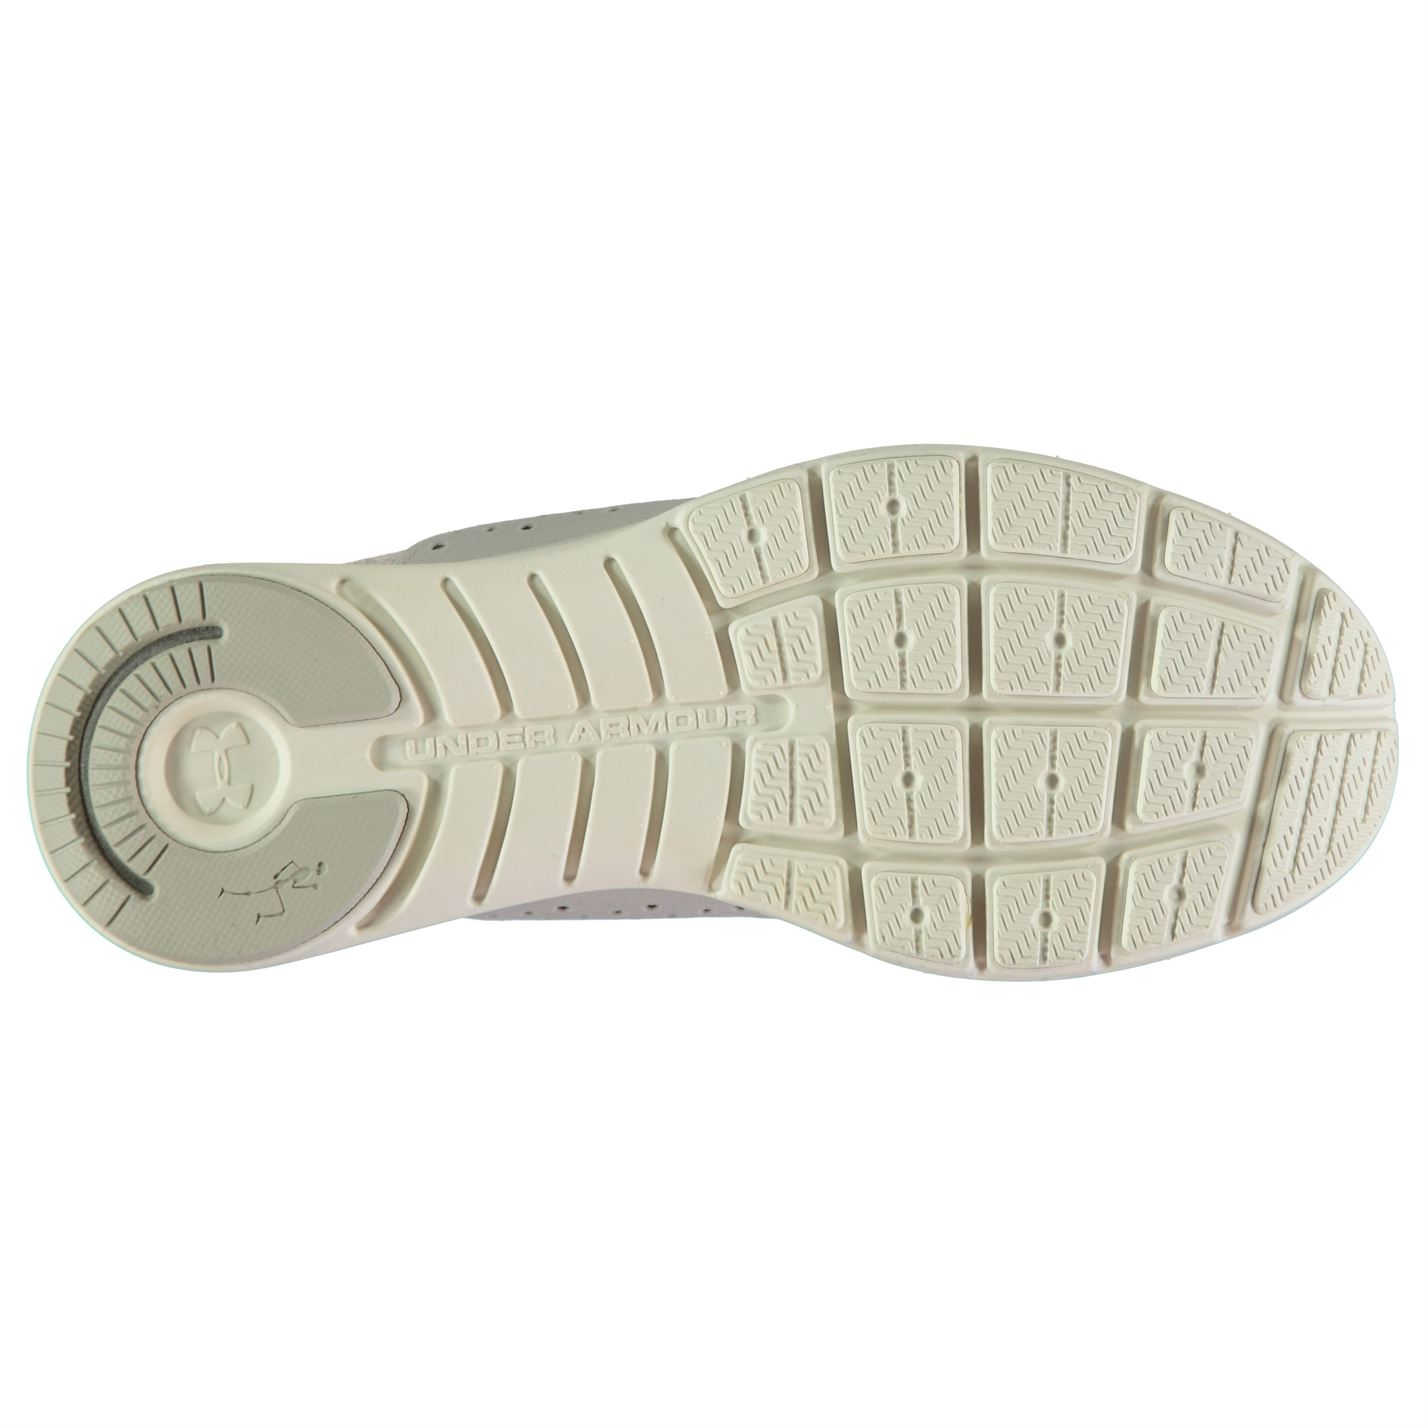 Lacci imbottiti Ankle Runners Sneakers Armour Under Grey Ladies allacciati Slingwrap 8wXZgqf0